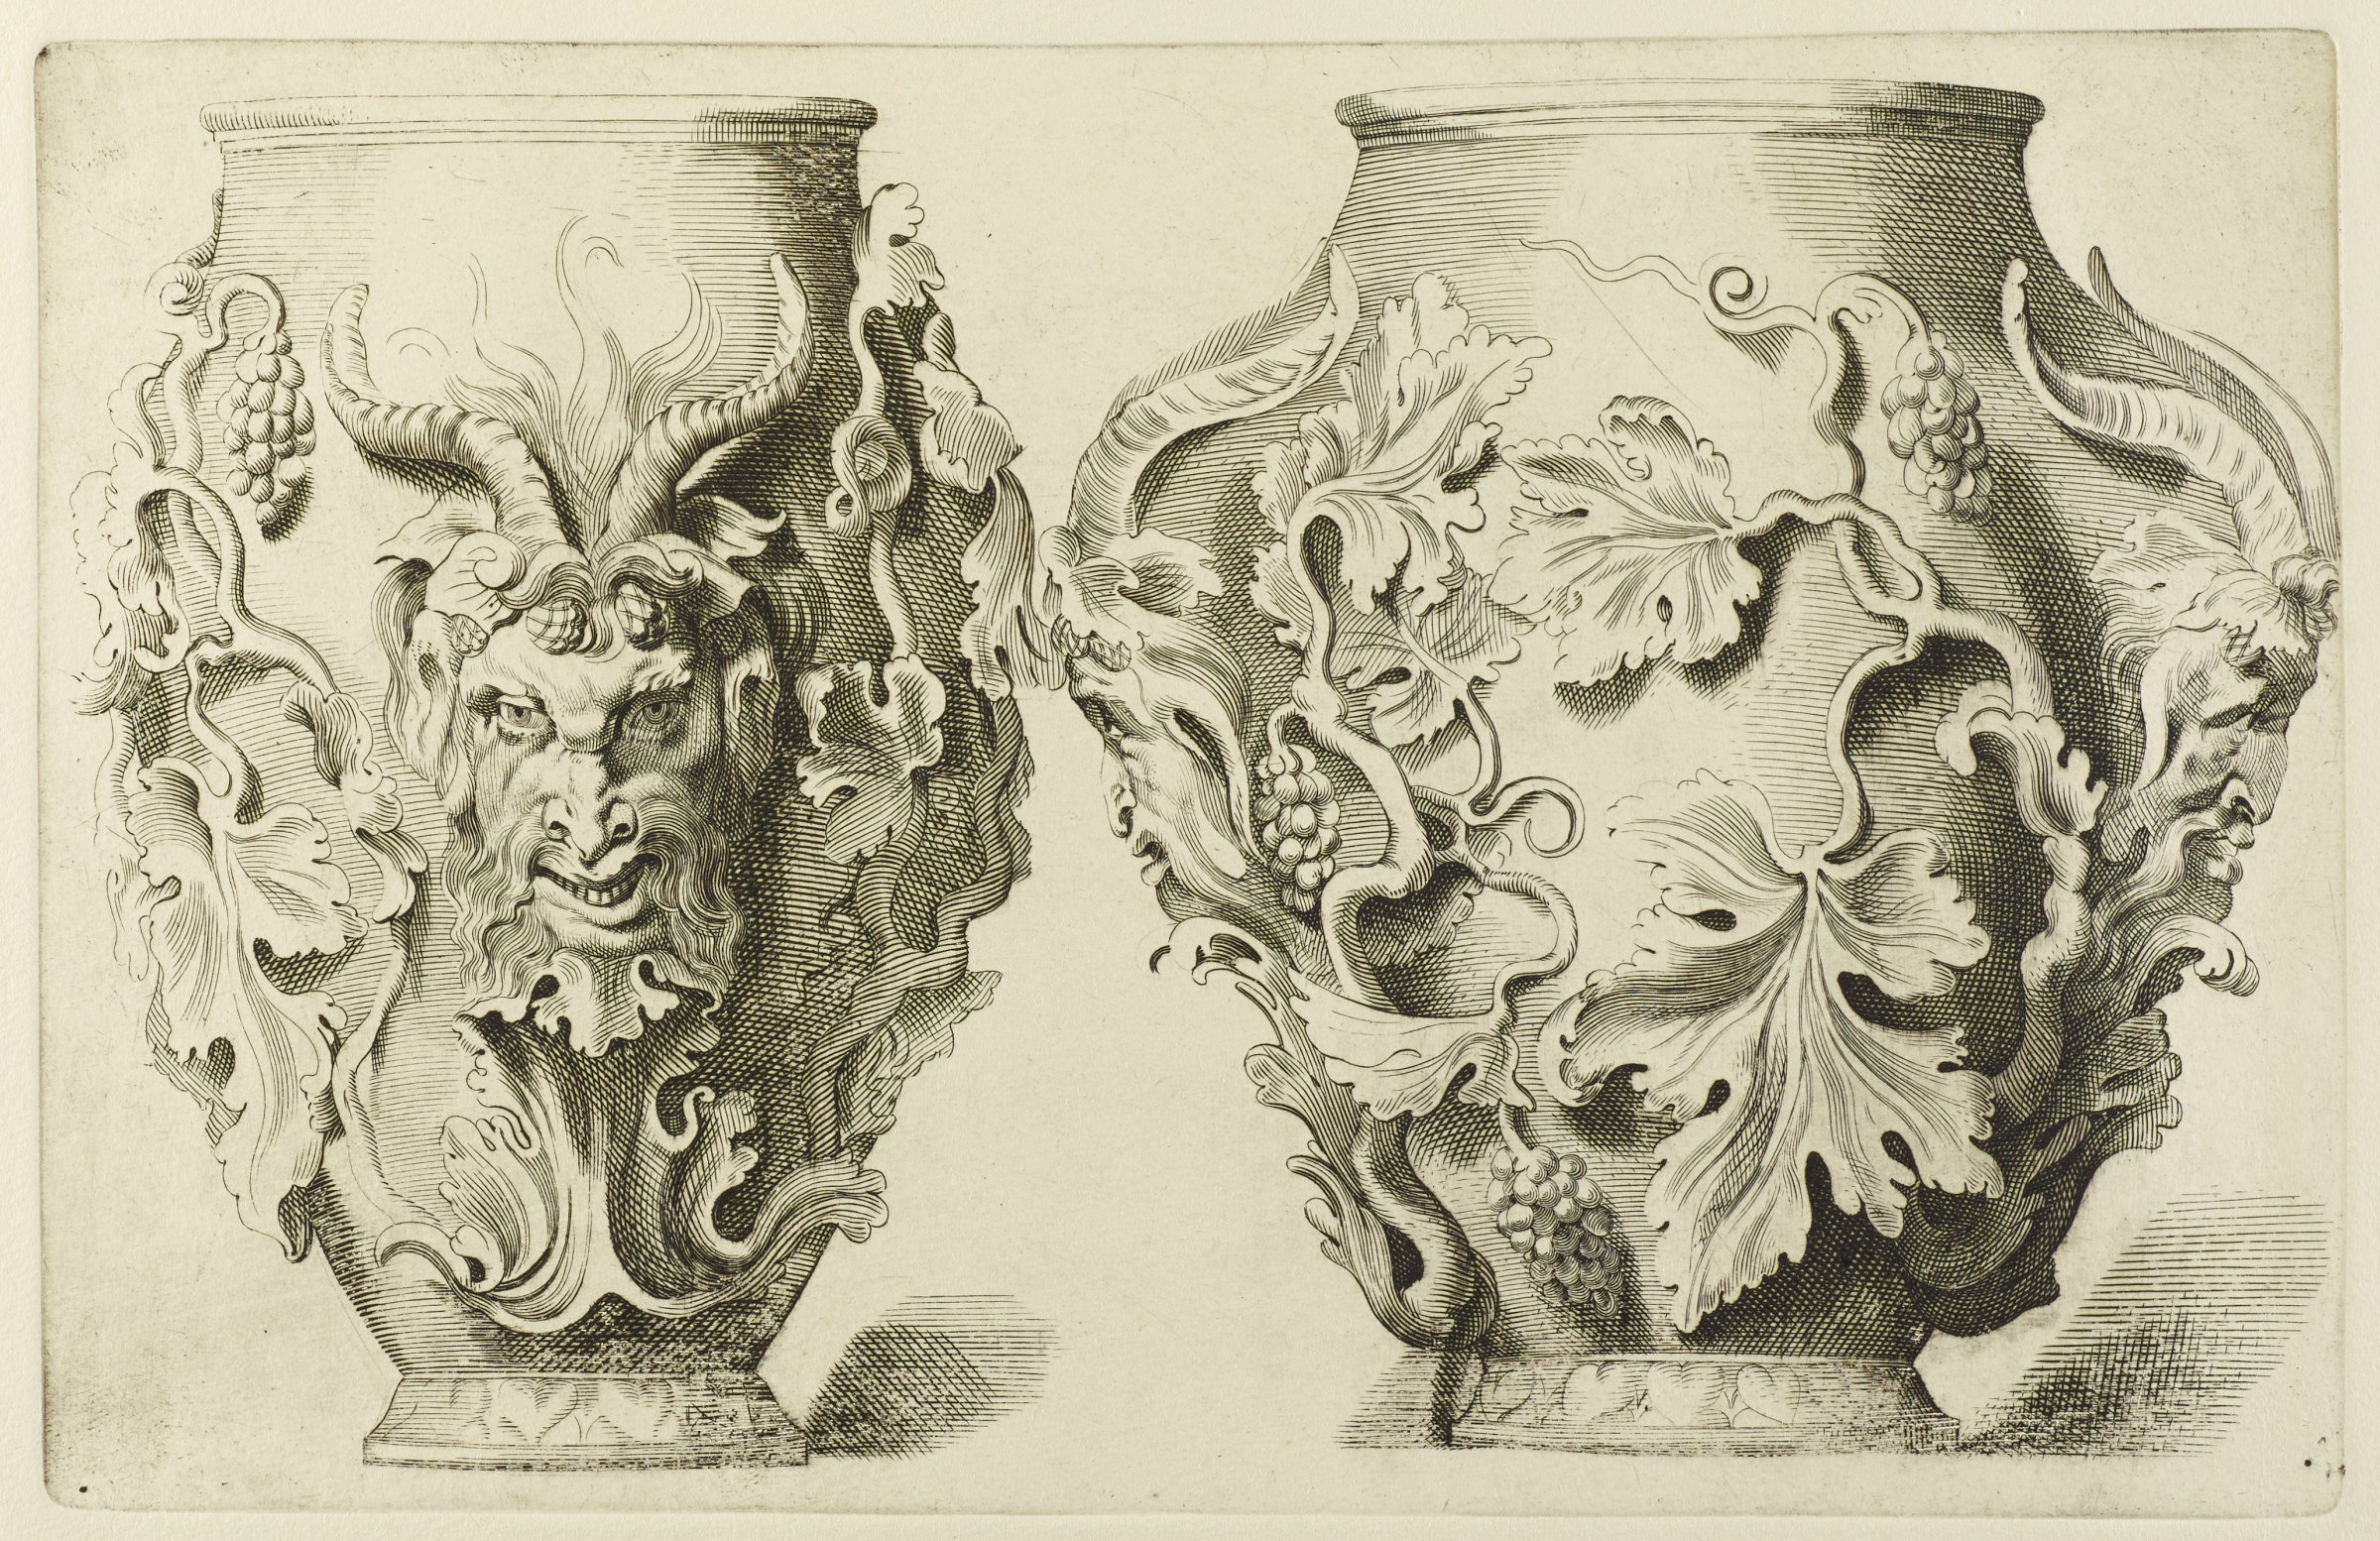 A single vase is shown in profile from two angles. The vase is decorated with foliage and images of horned figures.